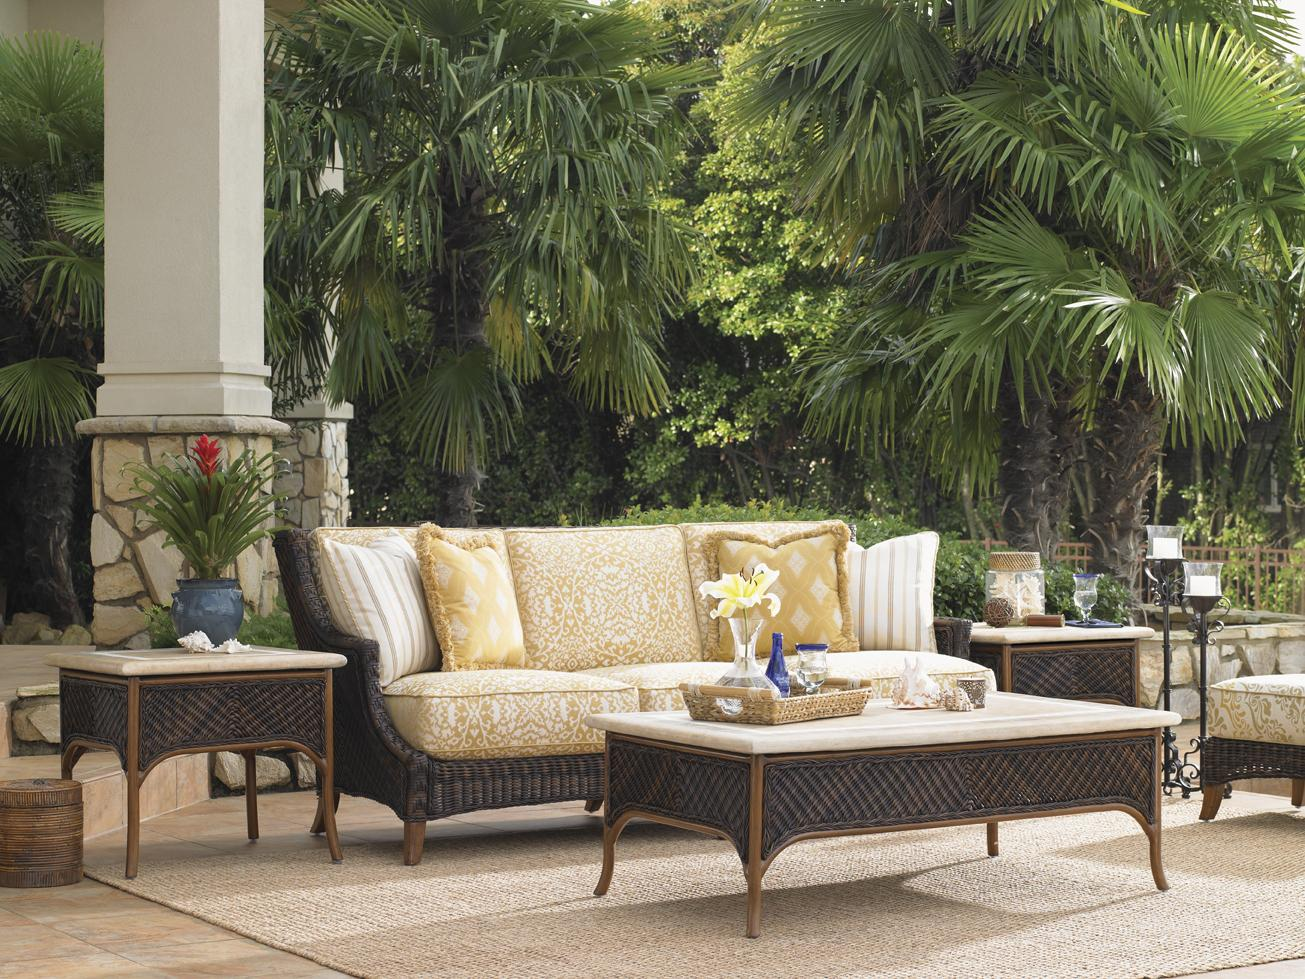 Island estate lanai 3170 by tommy bahama outdoor living for Outdoor lanai furniture